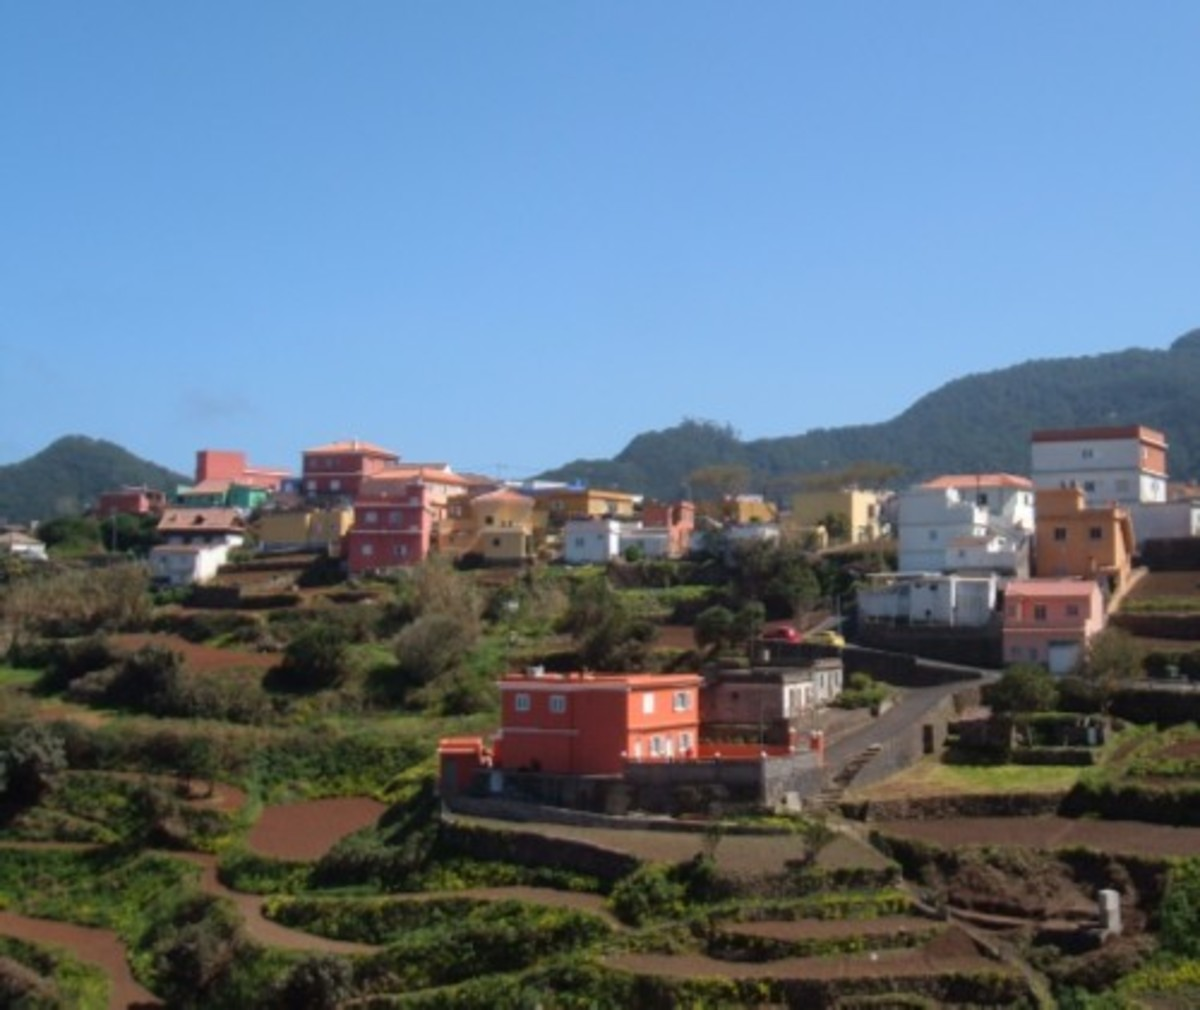 Las Carboneras village. Photo by Steve Andrews